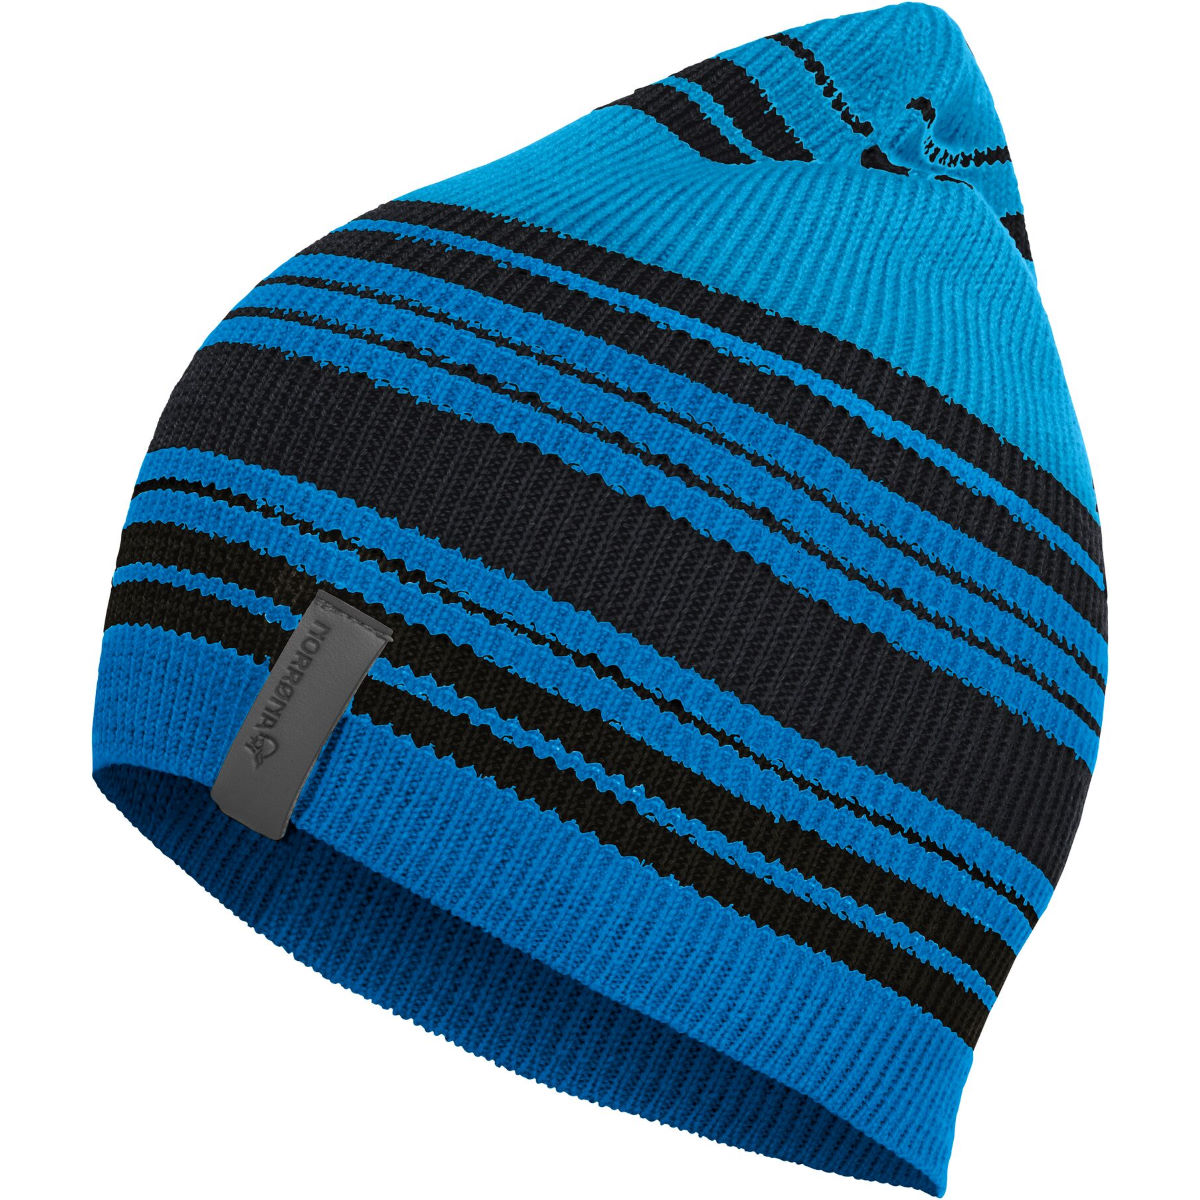 Norrøna Norrøna /29 Striped Light Weight Beanie   Beanies